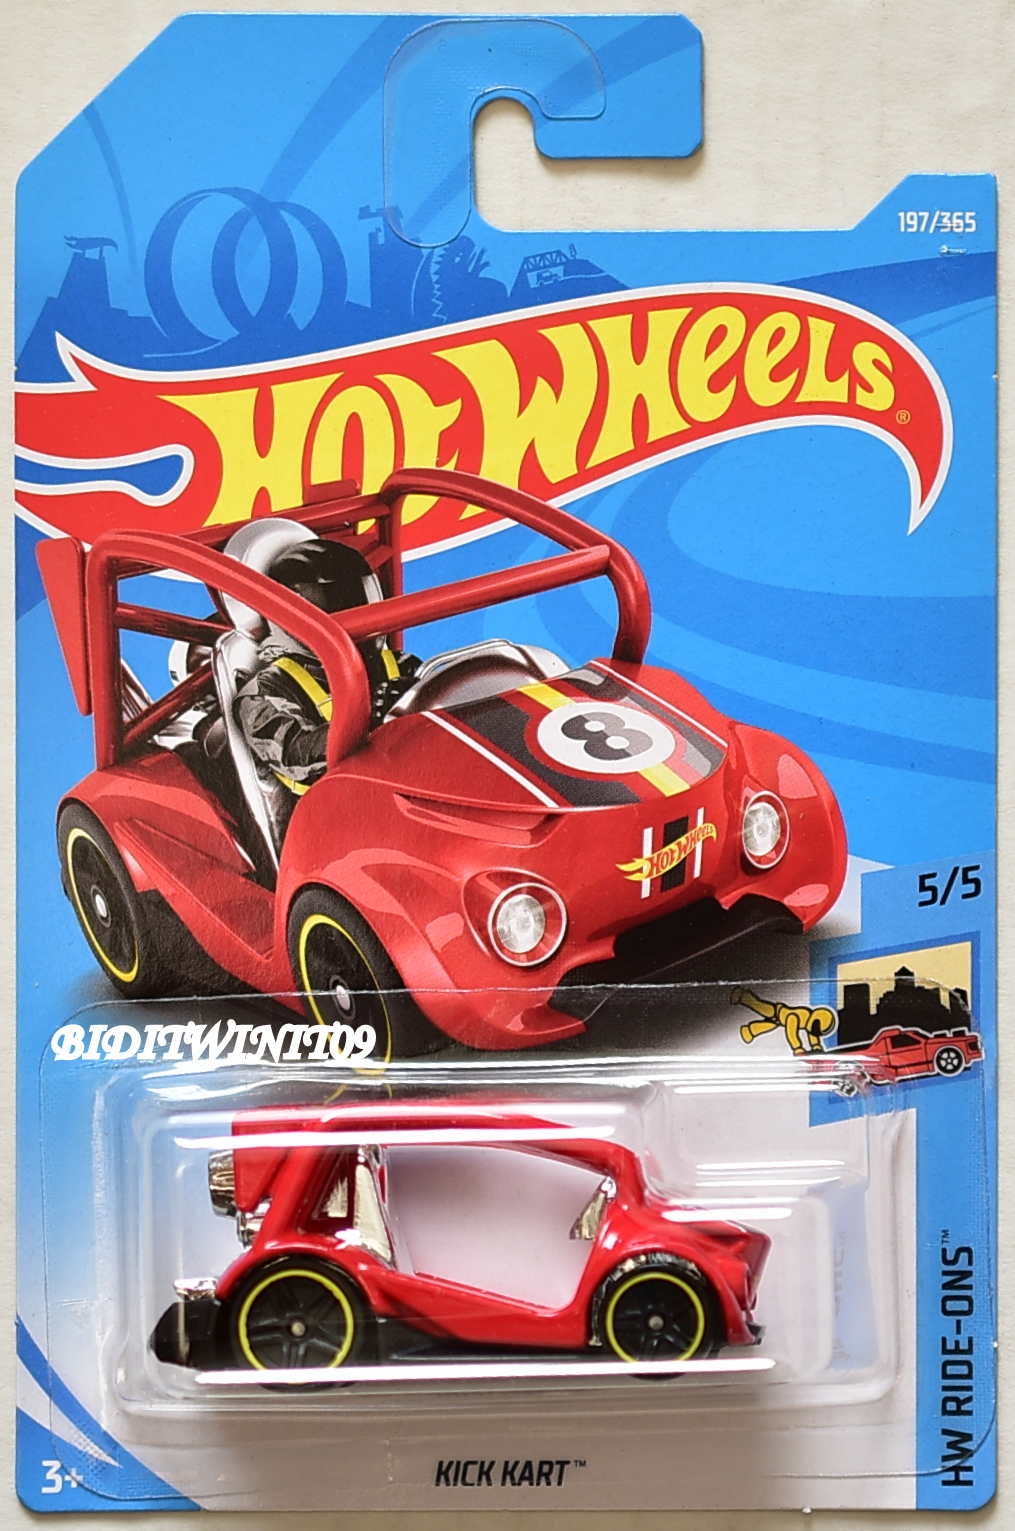 ons kart HOT WHEELS 2018 HW RIDE ONS KICK KART #5/5 RED [0010350]   $1.40  ons kart